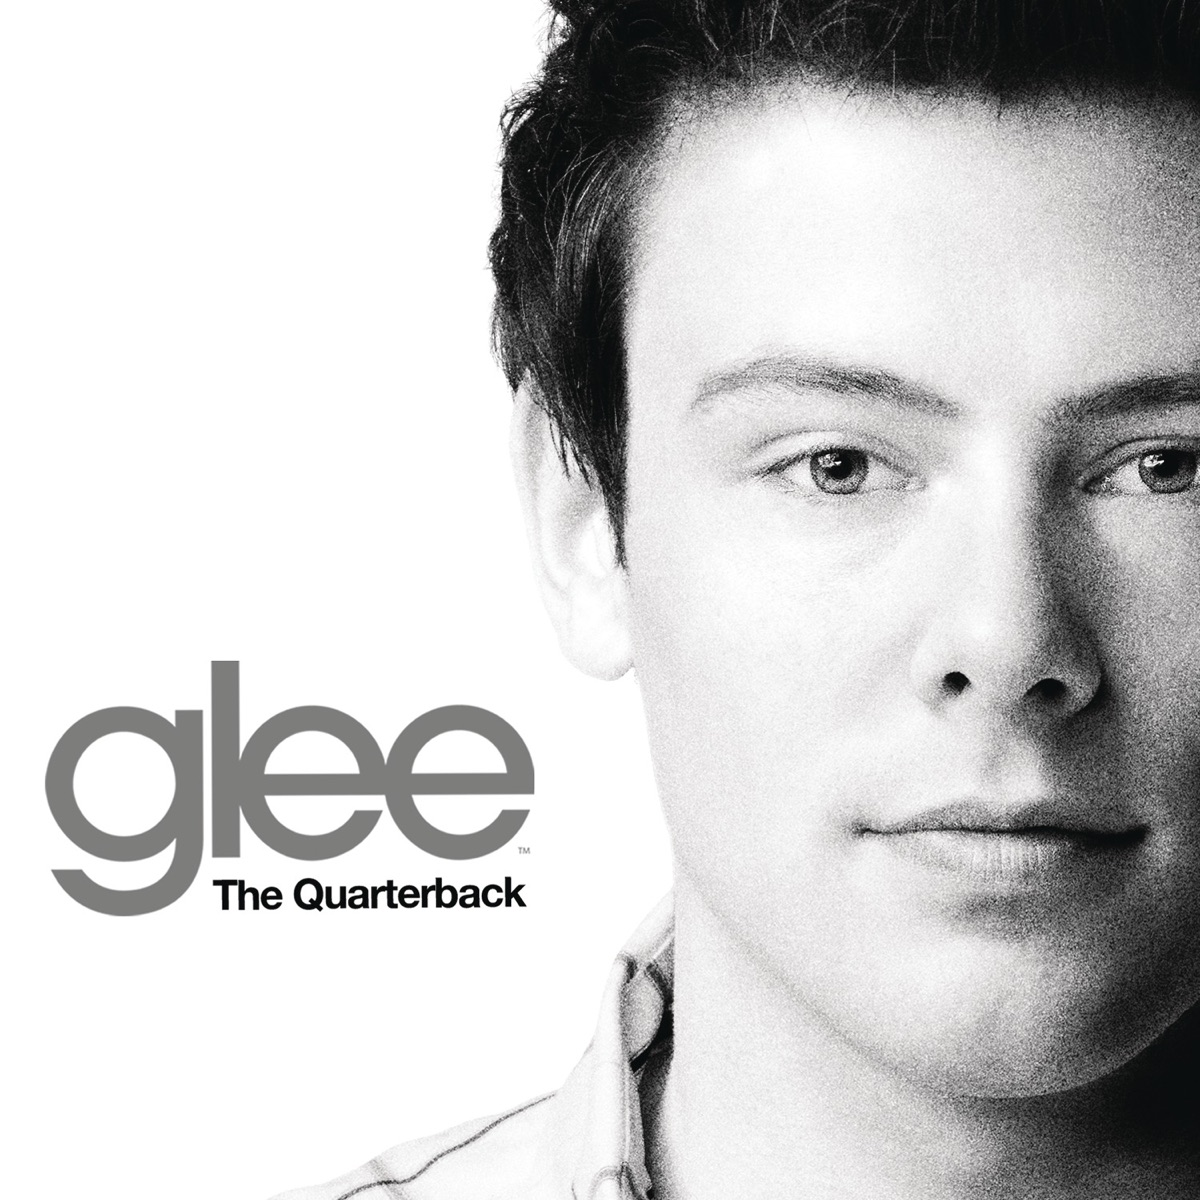 The Quarterback Music From the TV Series - EP Glee Cast CD cover